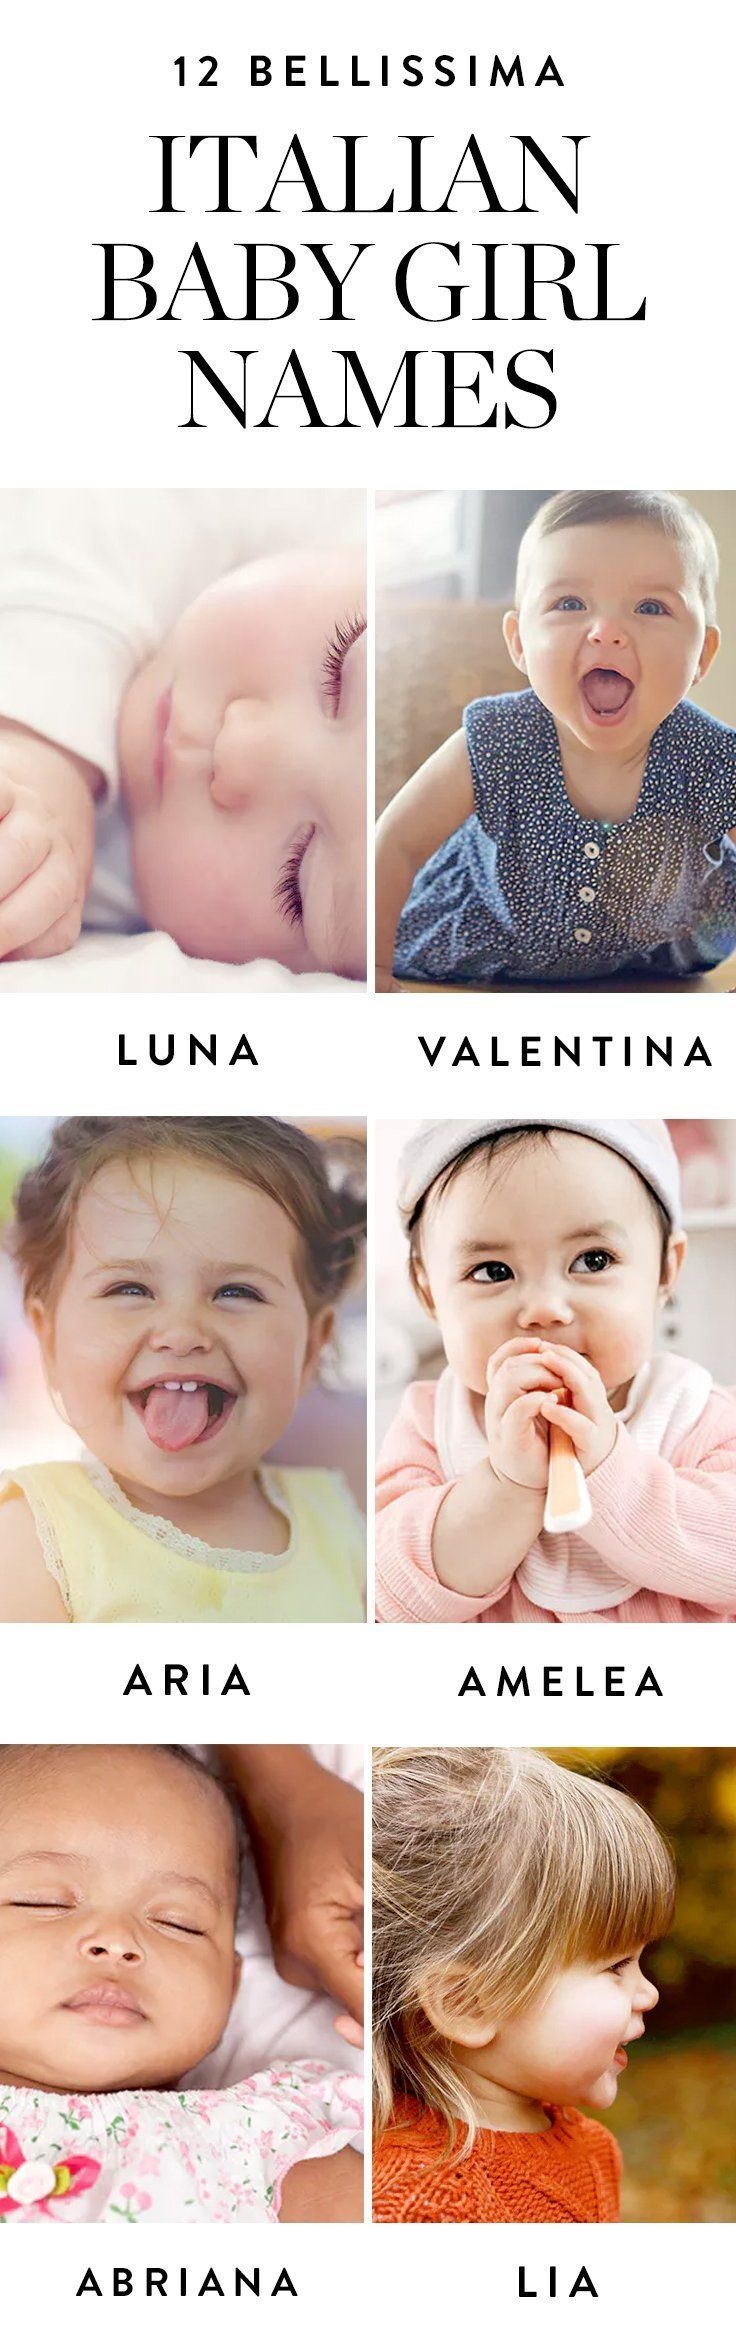 Here are 12 bellissima Italian baby names for little girls.